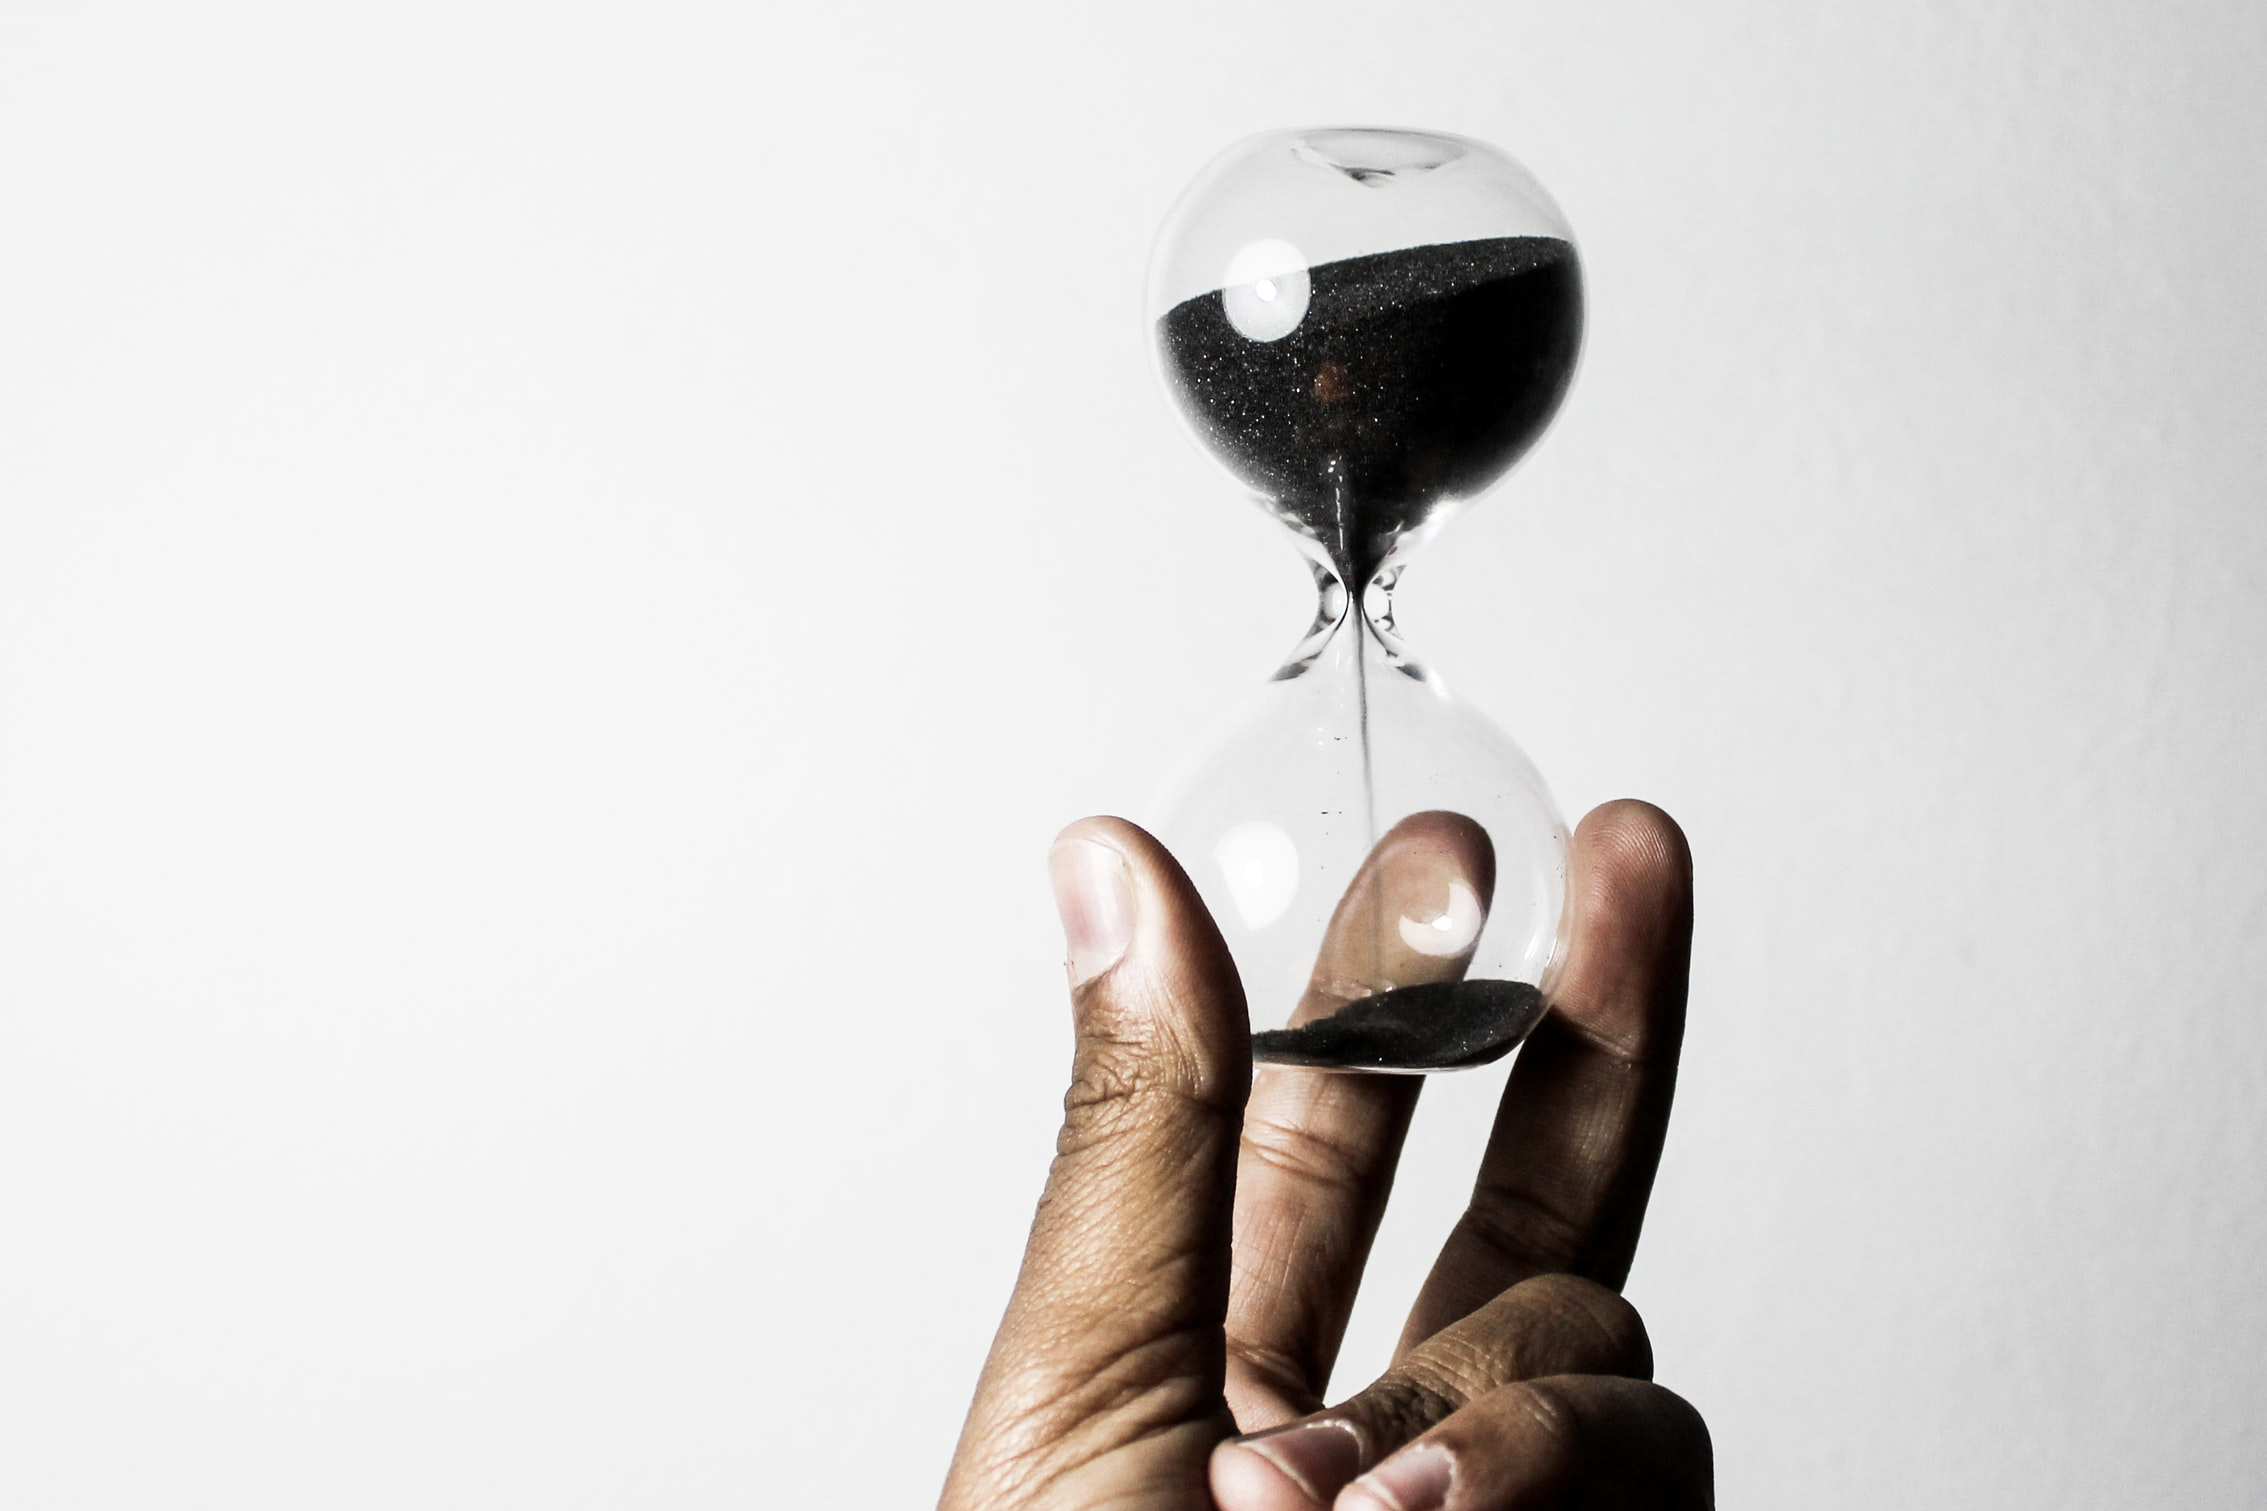 hand holding an hour glass